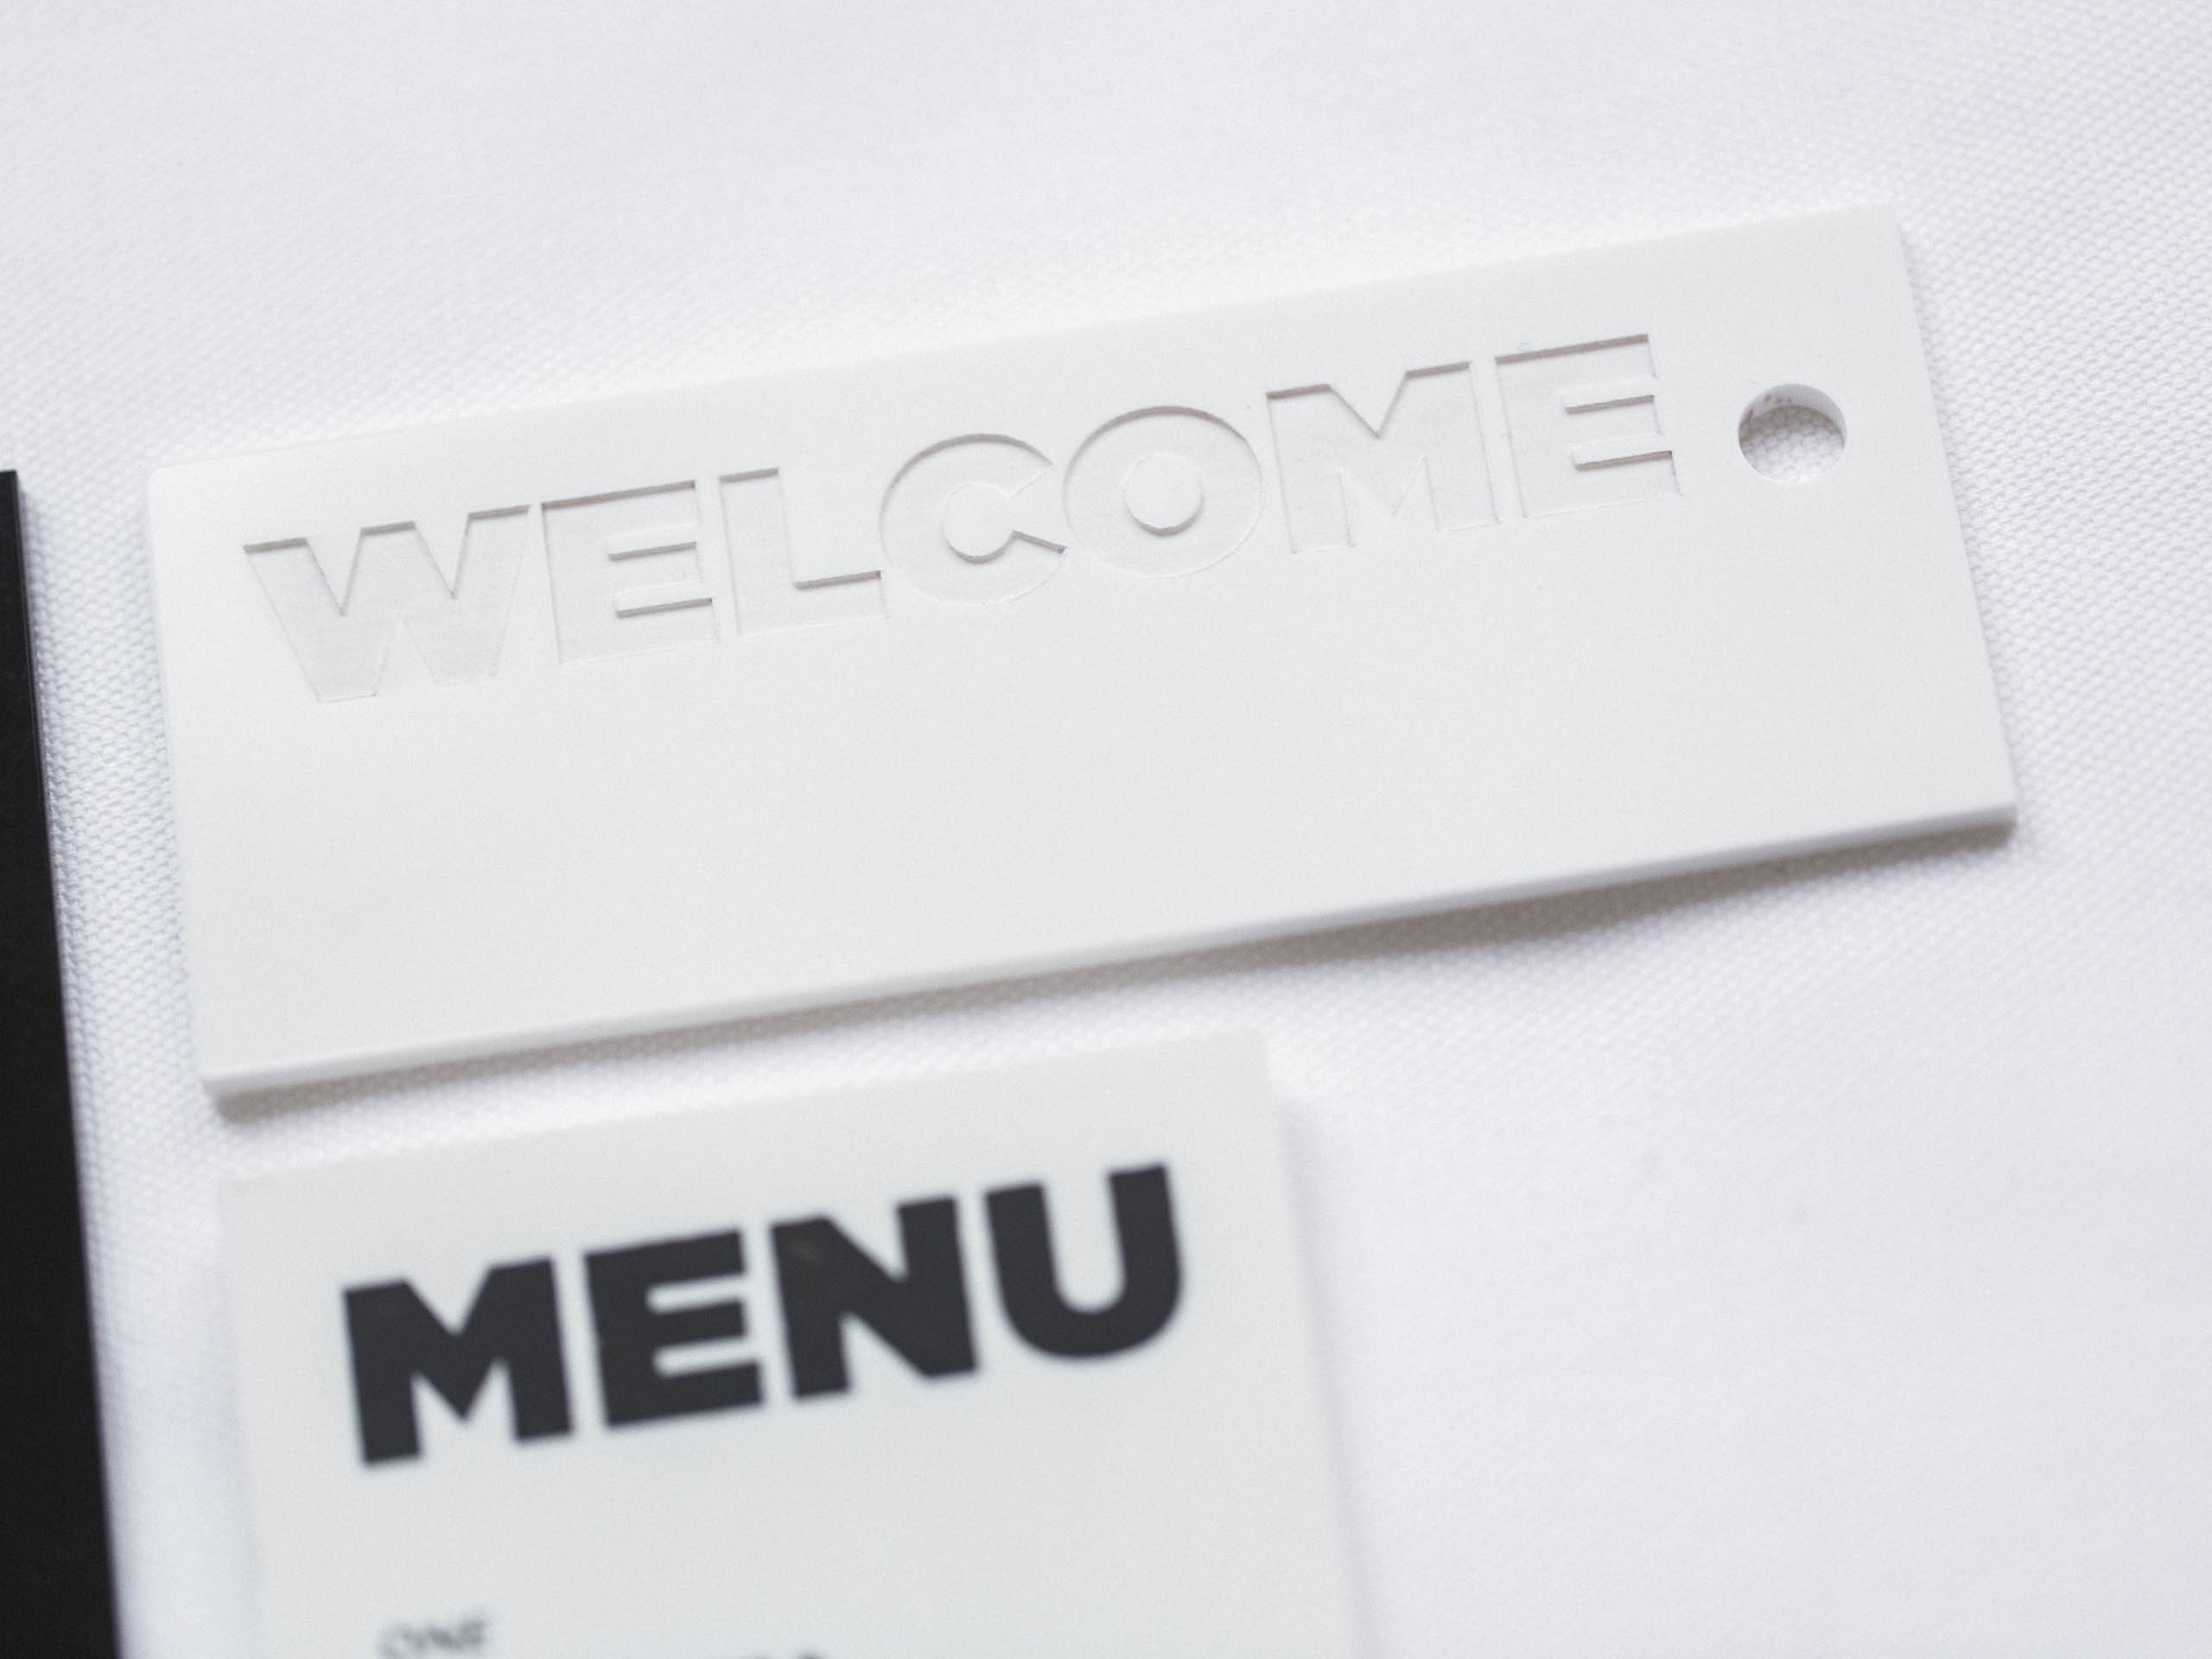 And white-on-white welcome messages are chic as can be